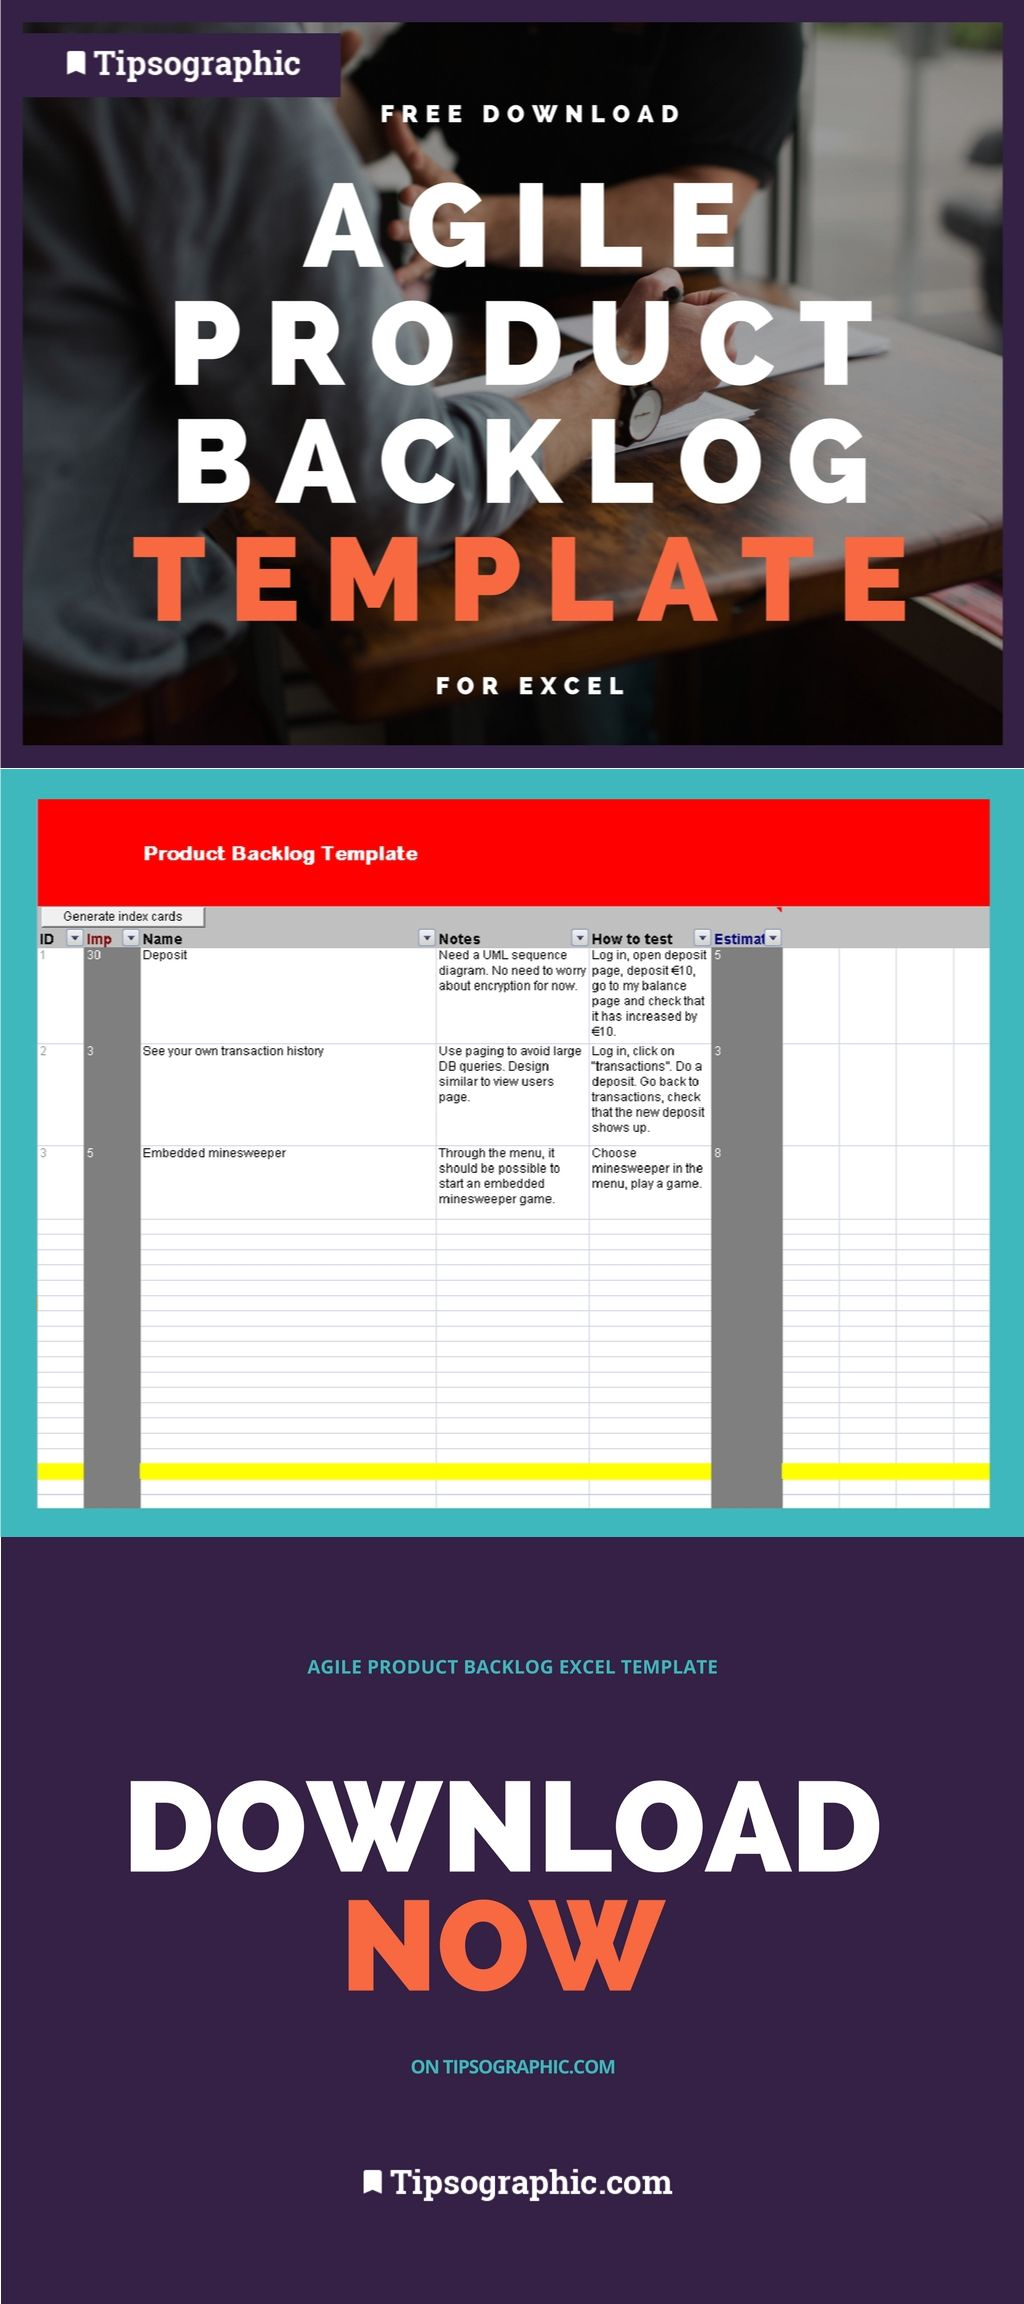 Agile Product Backlog Template For Excel Free Download  Project